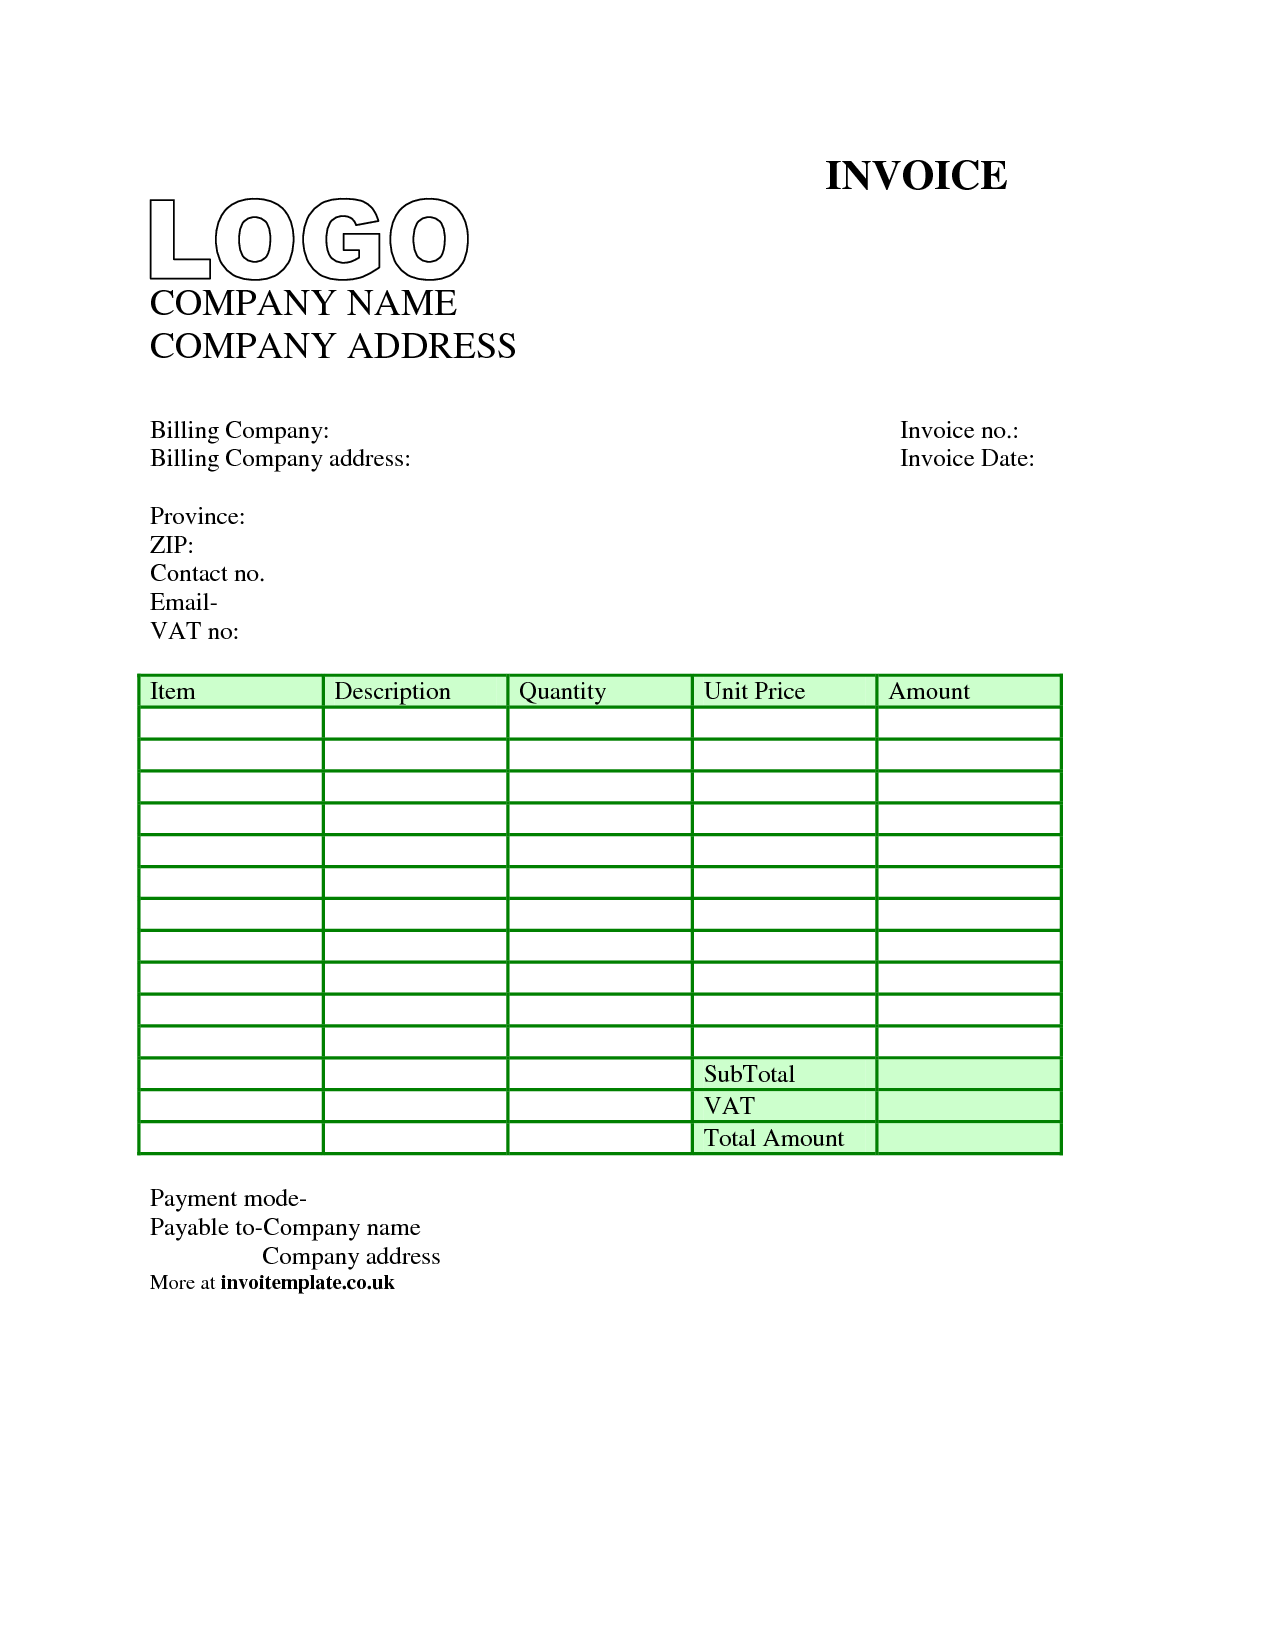 free invoice template download - invoice template uk word invoice example